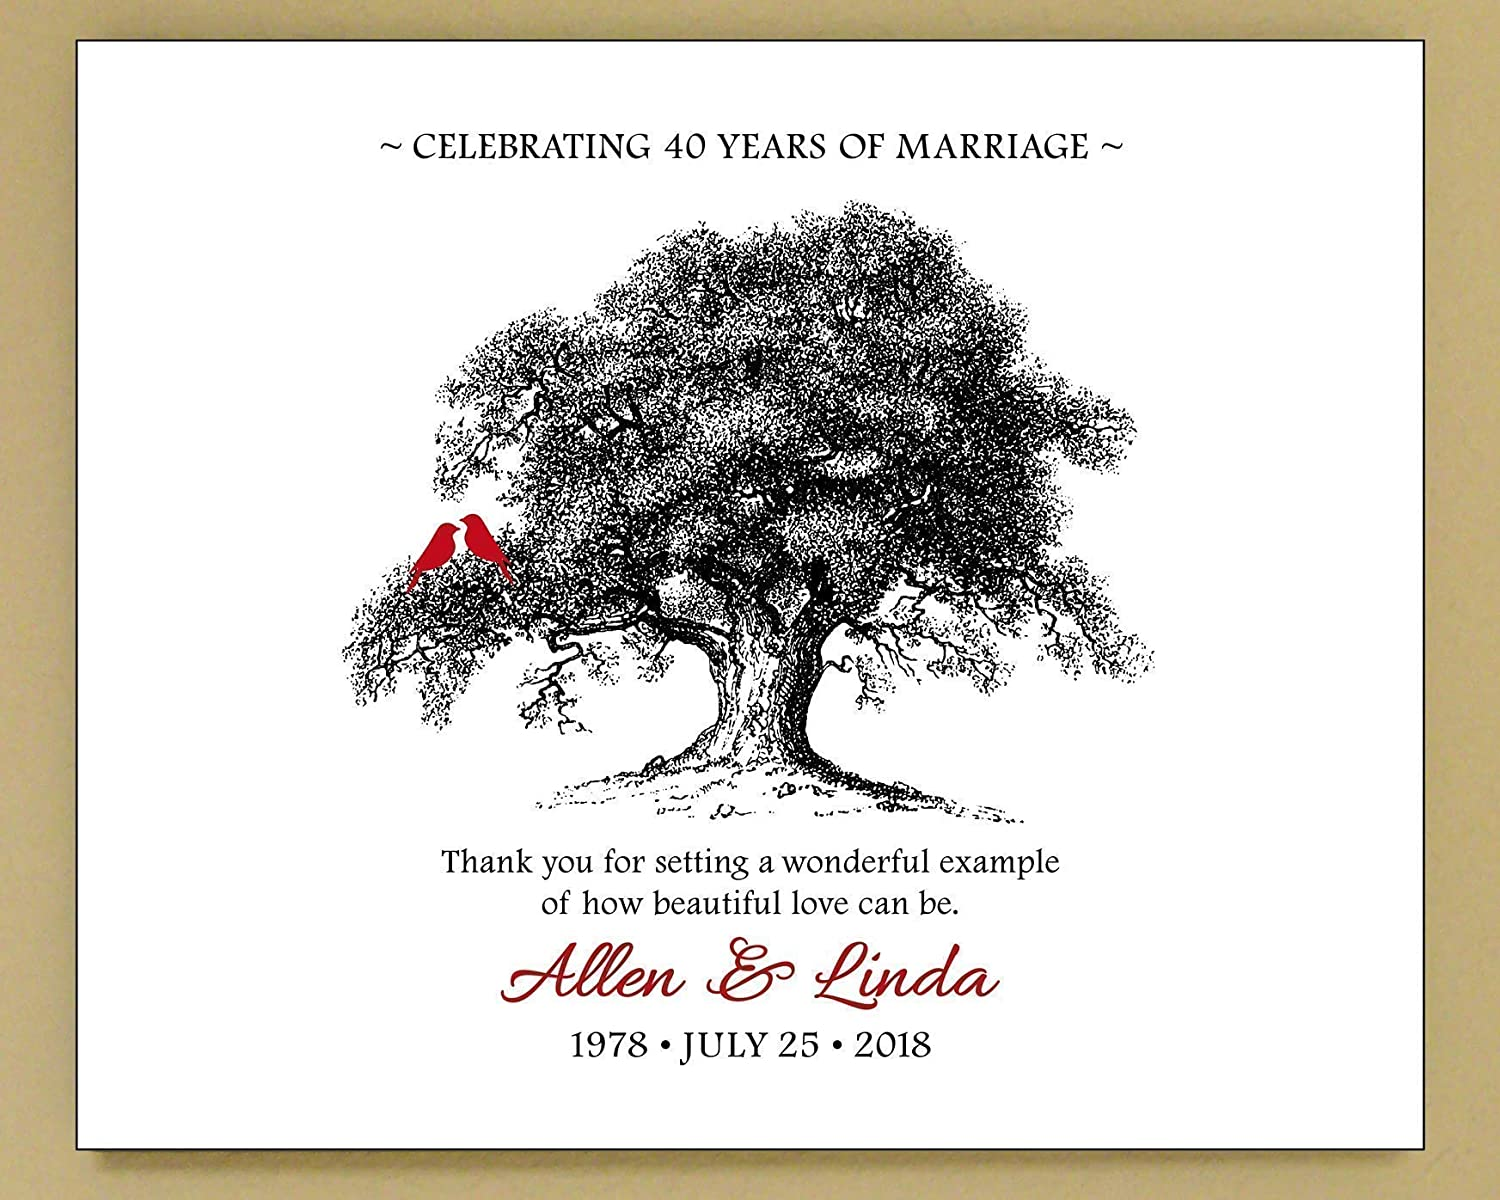 40th Wedding Anniversary Gift.40th Wedding Anniversary Gift For Mom Dad Couple Personalized 40 Year Ruby Anniversary Art Print